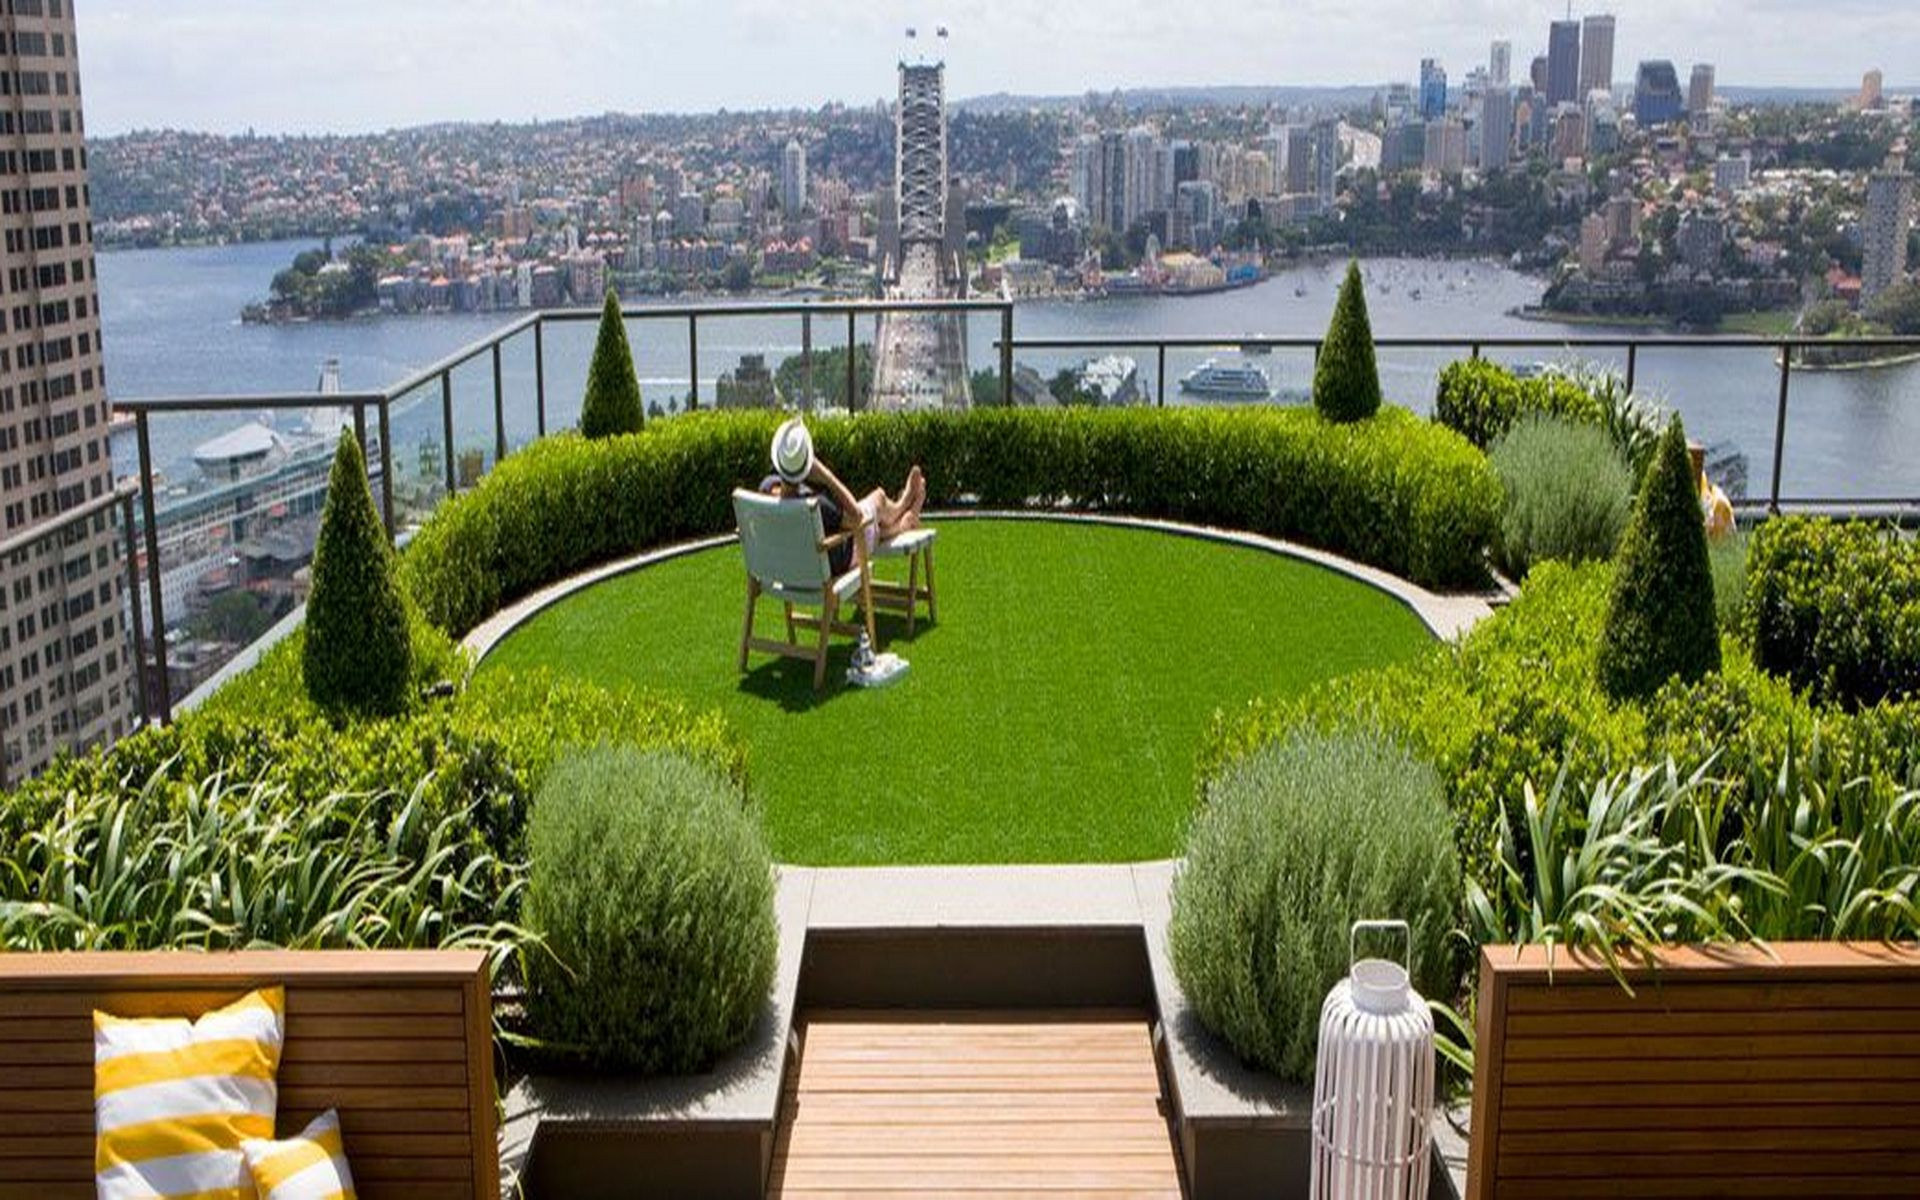 Slope garden ideas city landscape top view from rooftop for Best home garden ideas